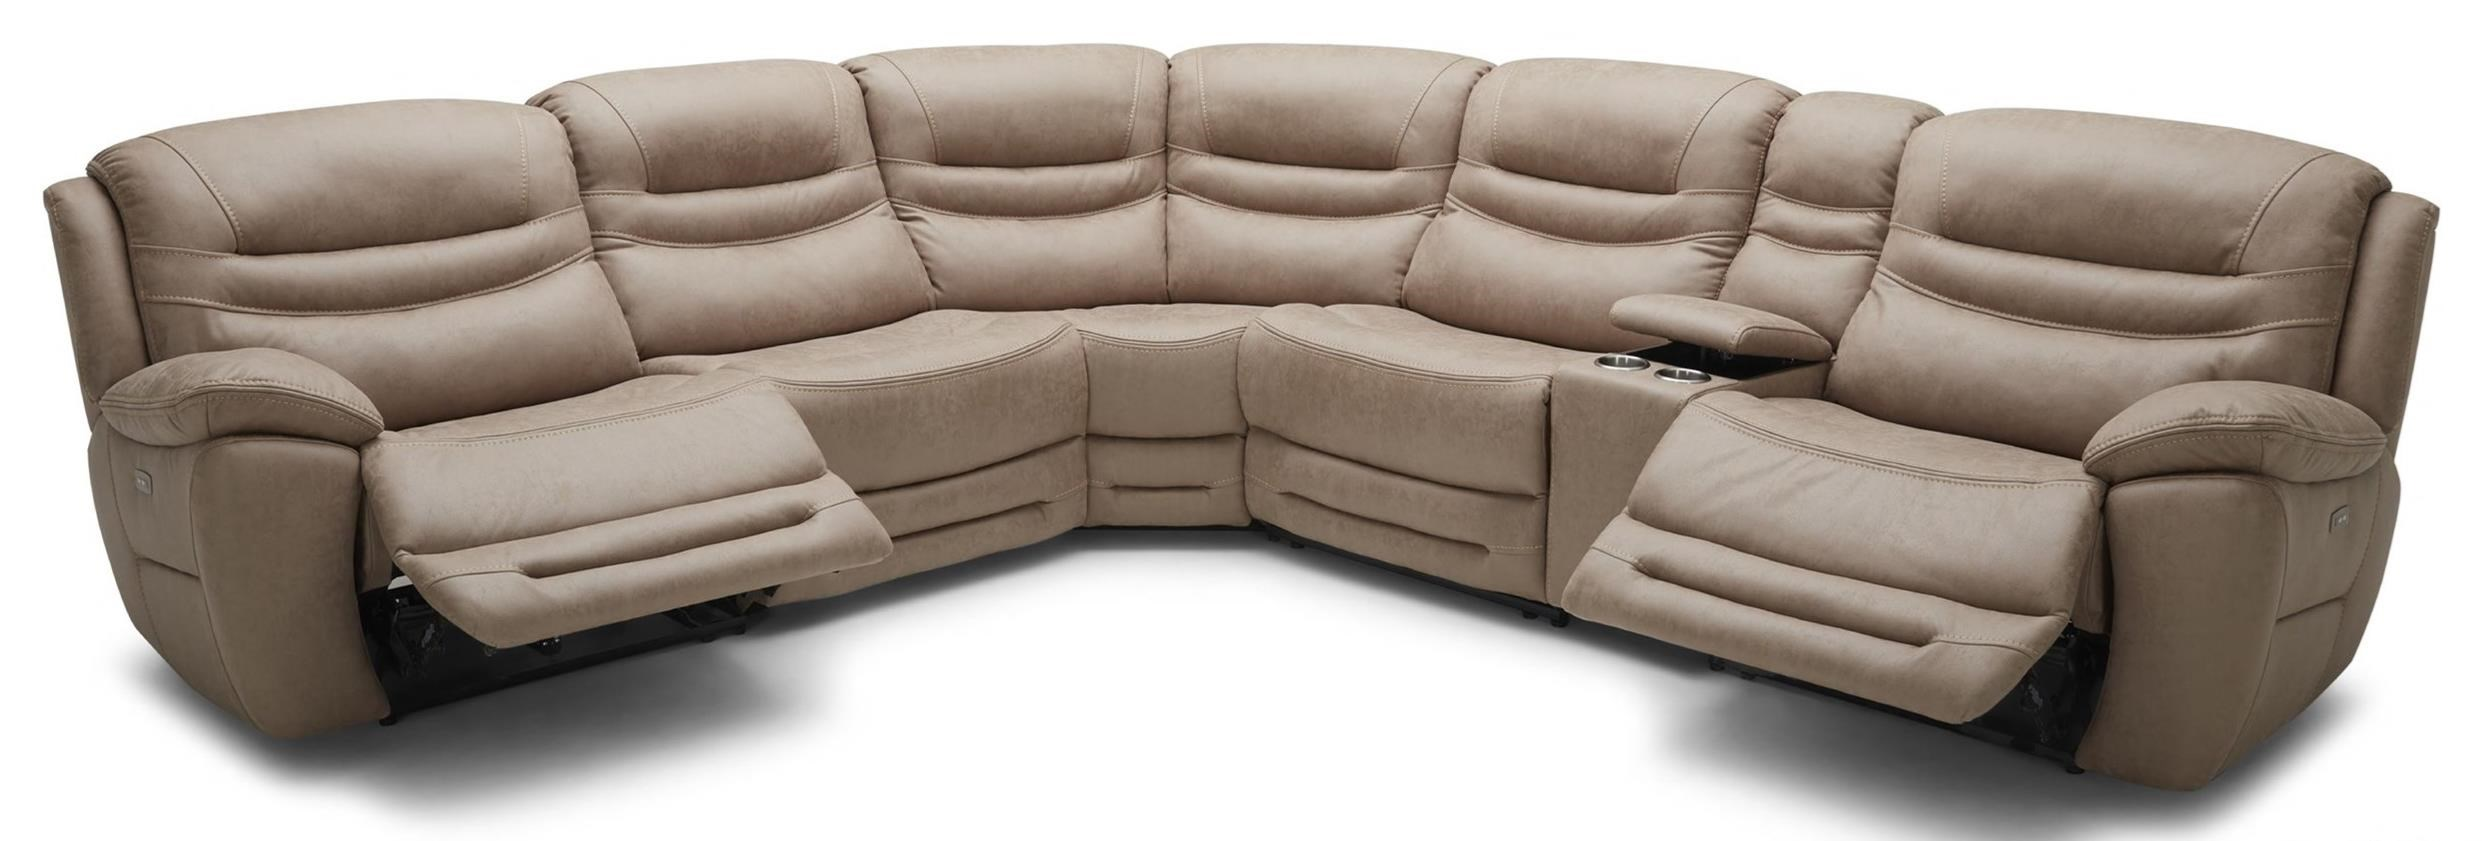 kuka home km083 six piece reclining sectional sofa with cupholder rh wilsonhomefurnishings com